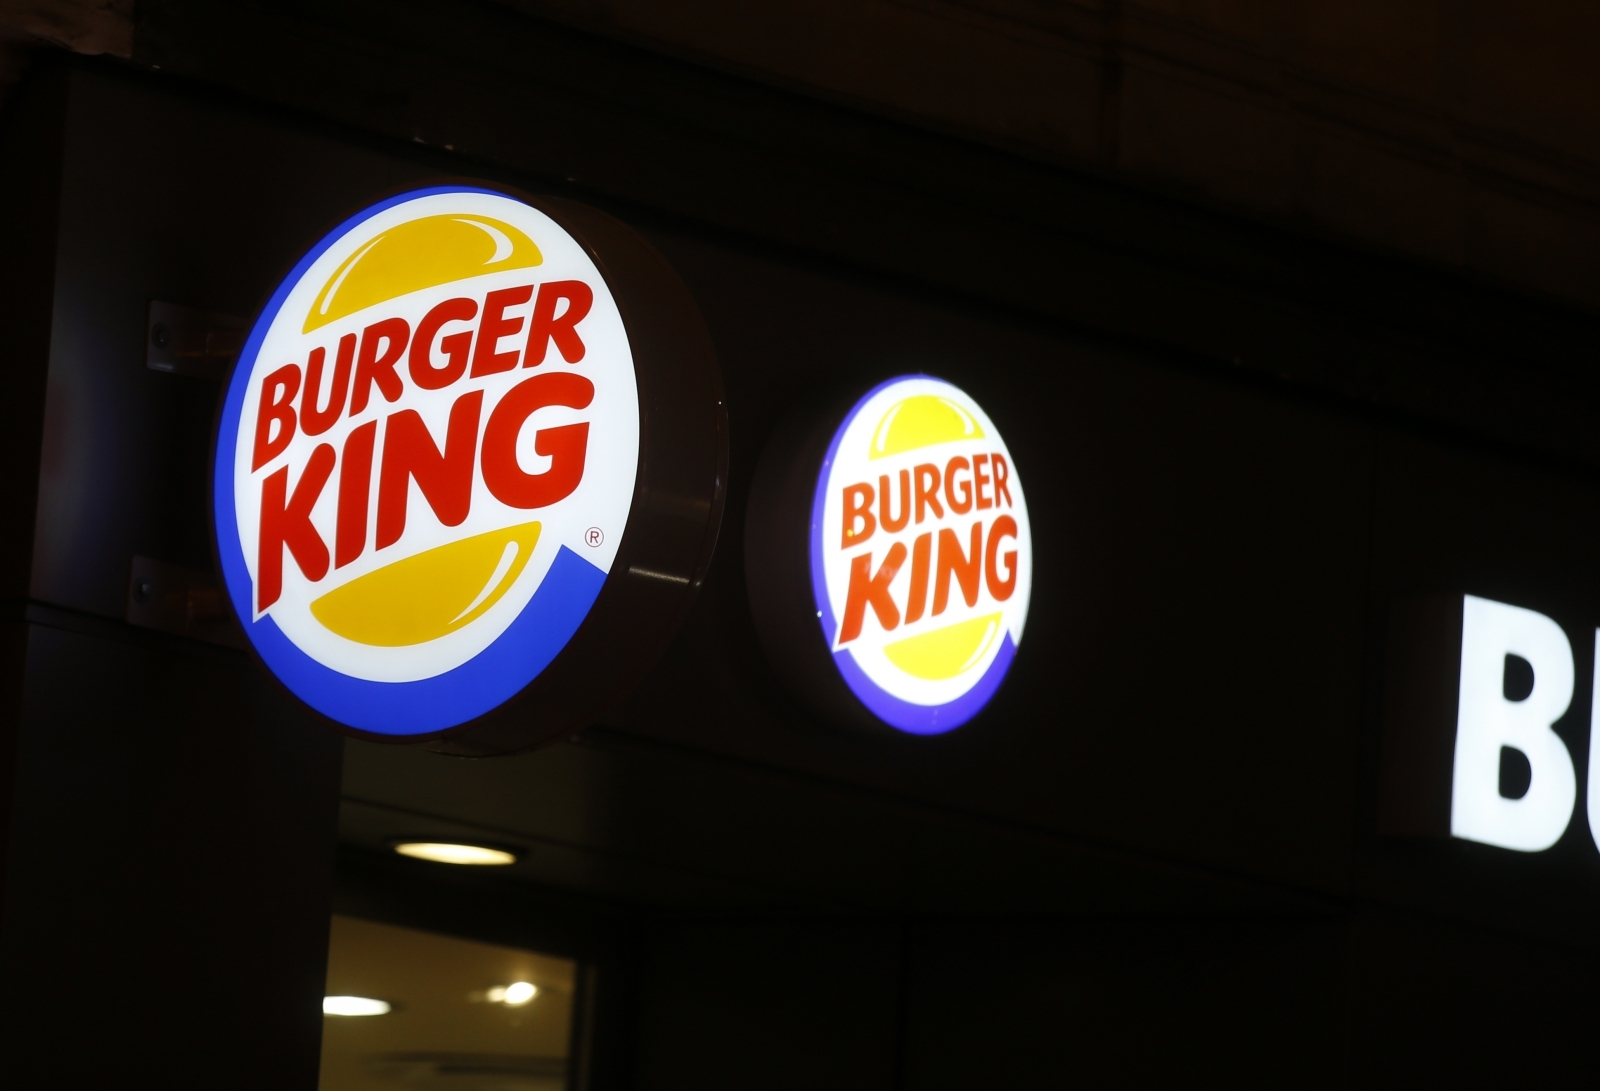 Burger king cryptocurrency